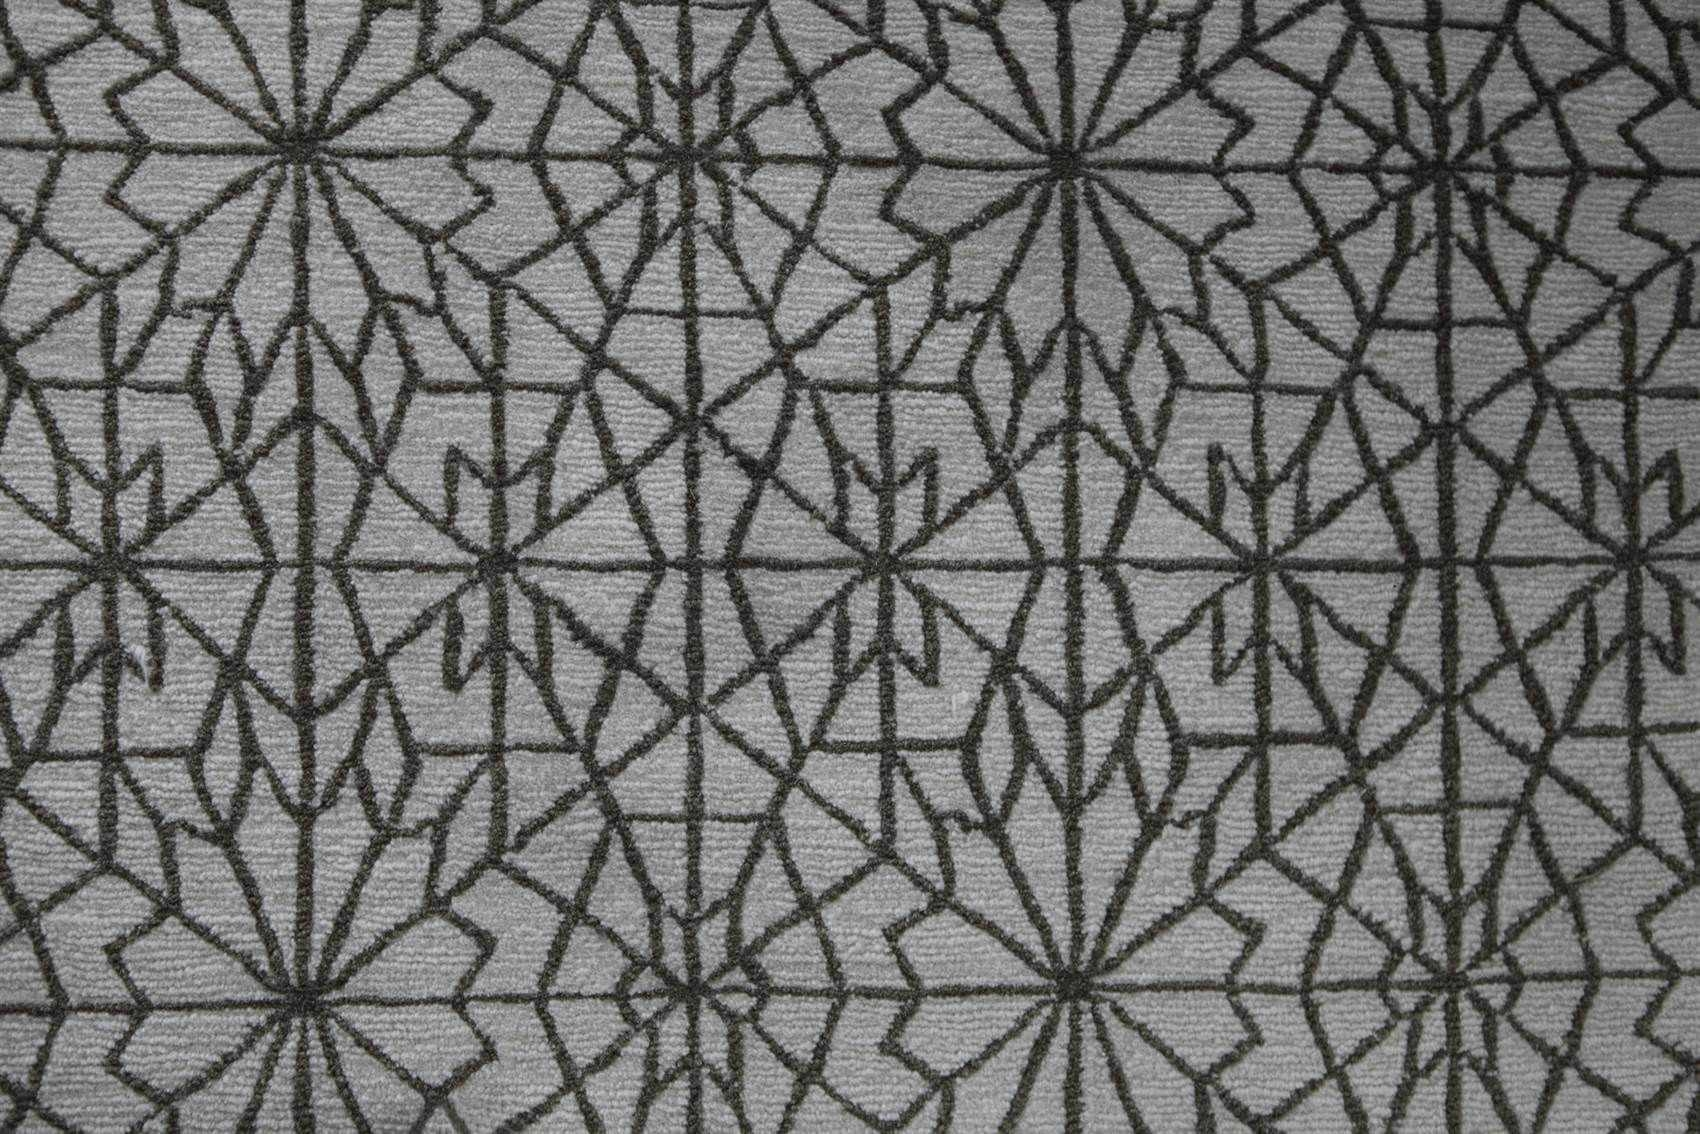 Contemporary Rug Patterned Wool Rectangular Arabian Throughout Geometric Carpet Patterns (View 11 of 15)